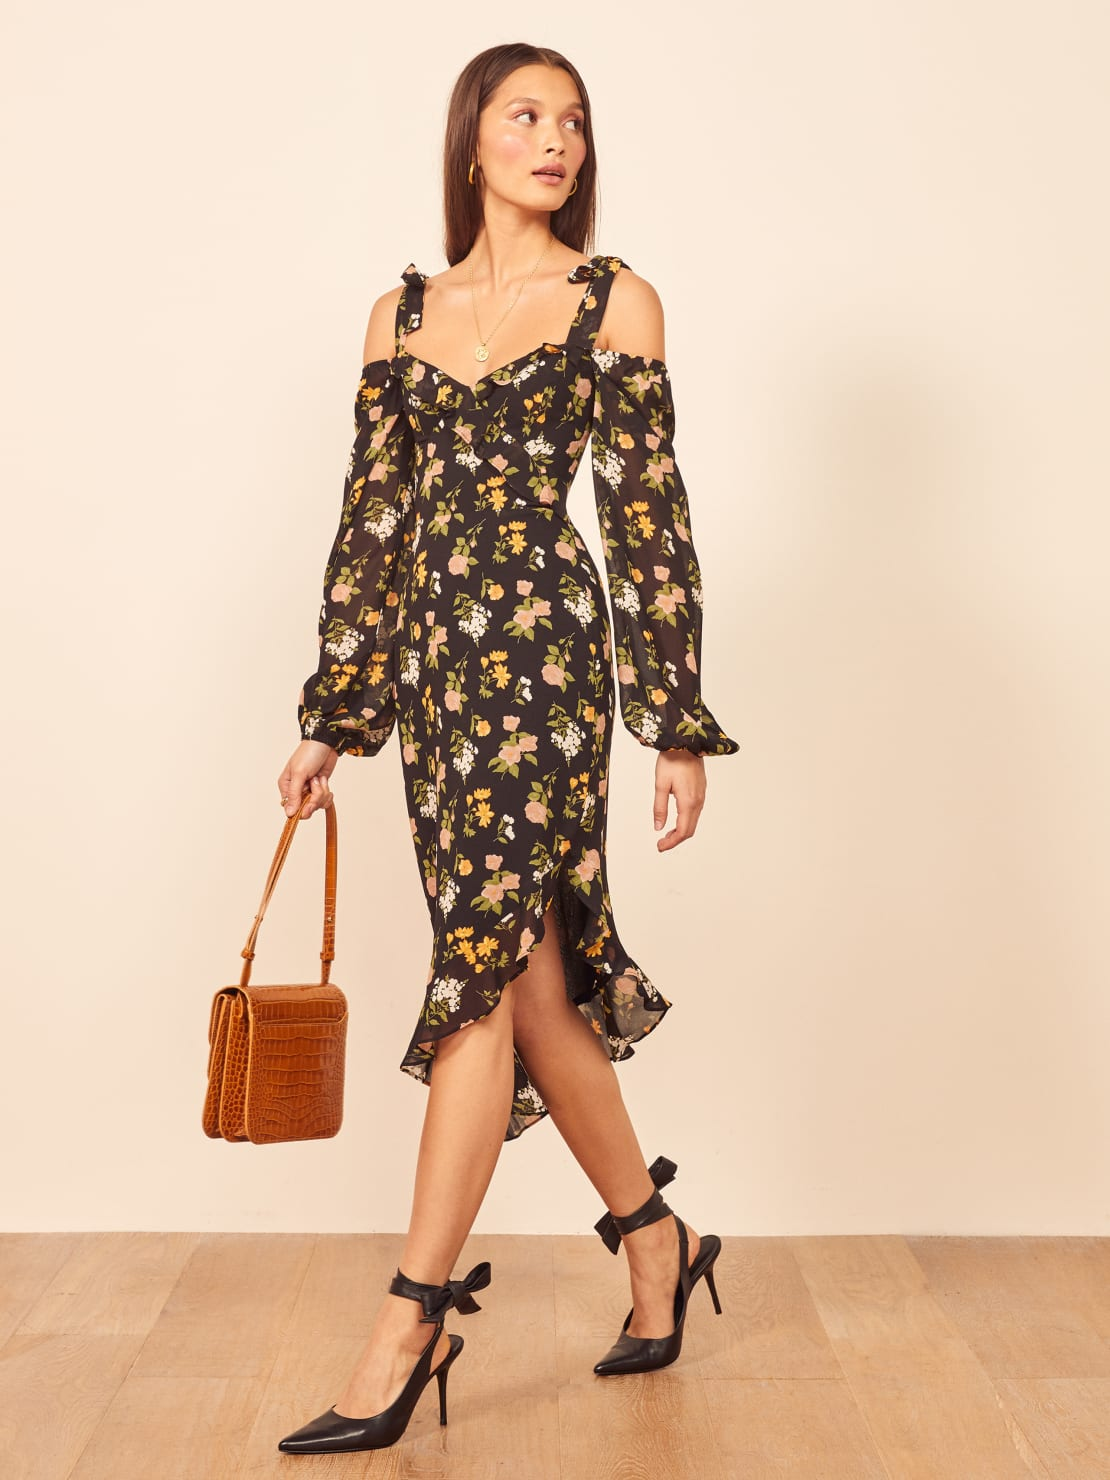 Autumnal dresses for fall wedding